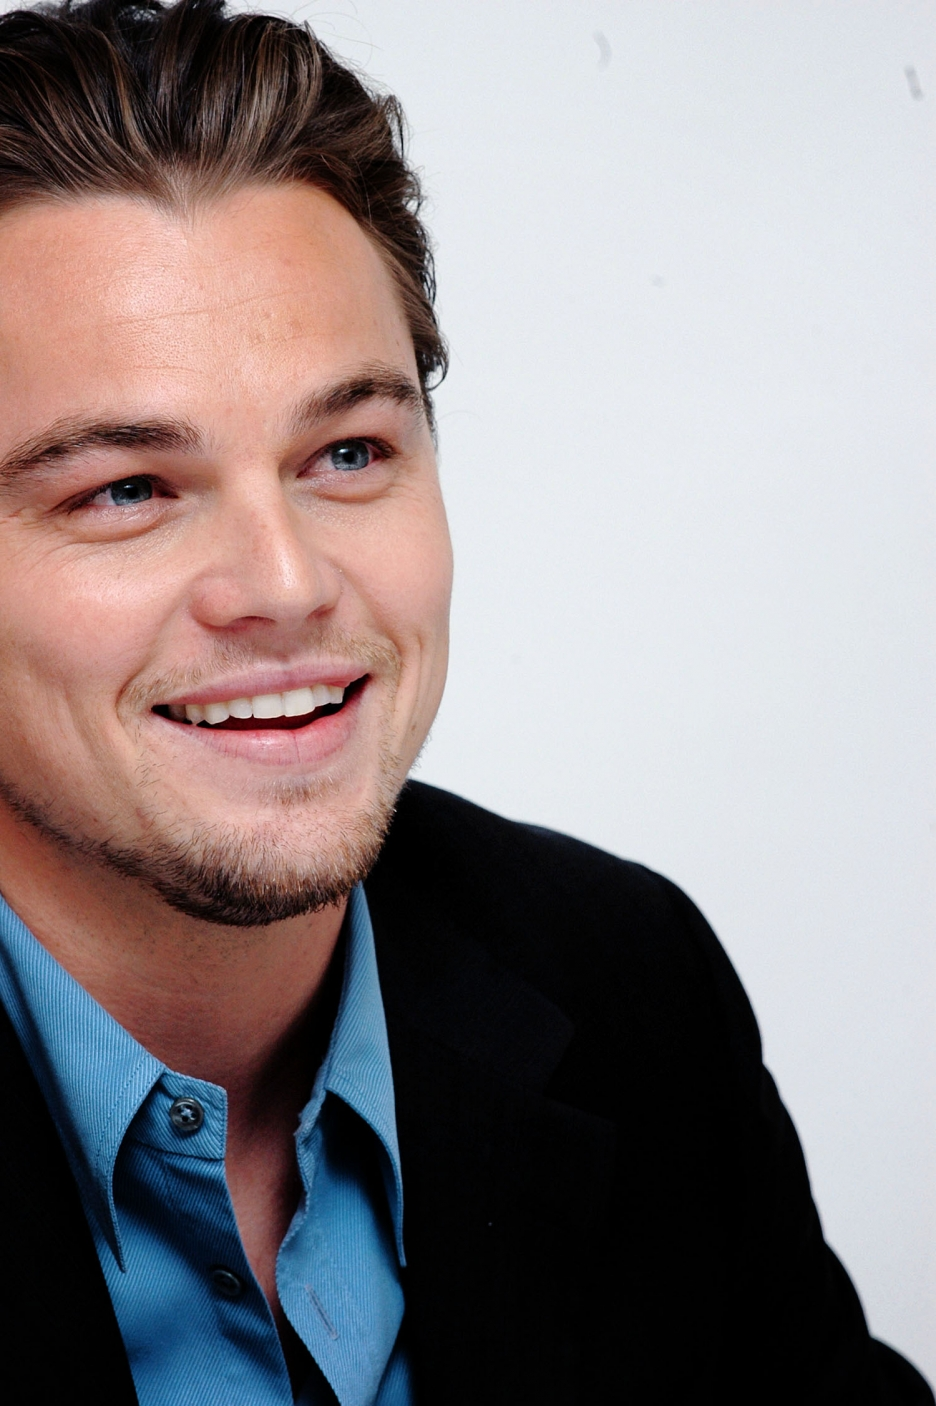 best popular celebrities: most popular celebrities leonardo dicaprio